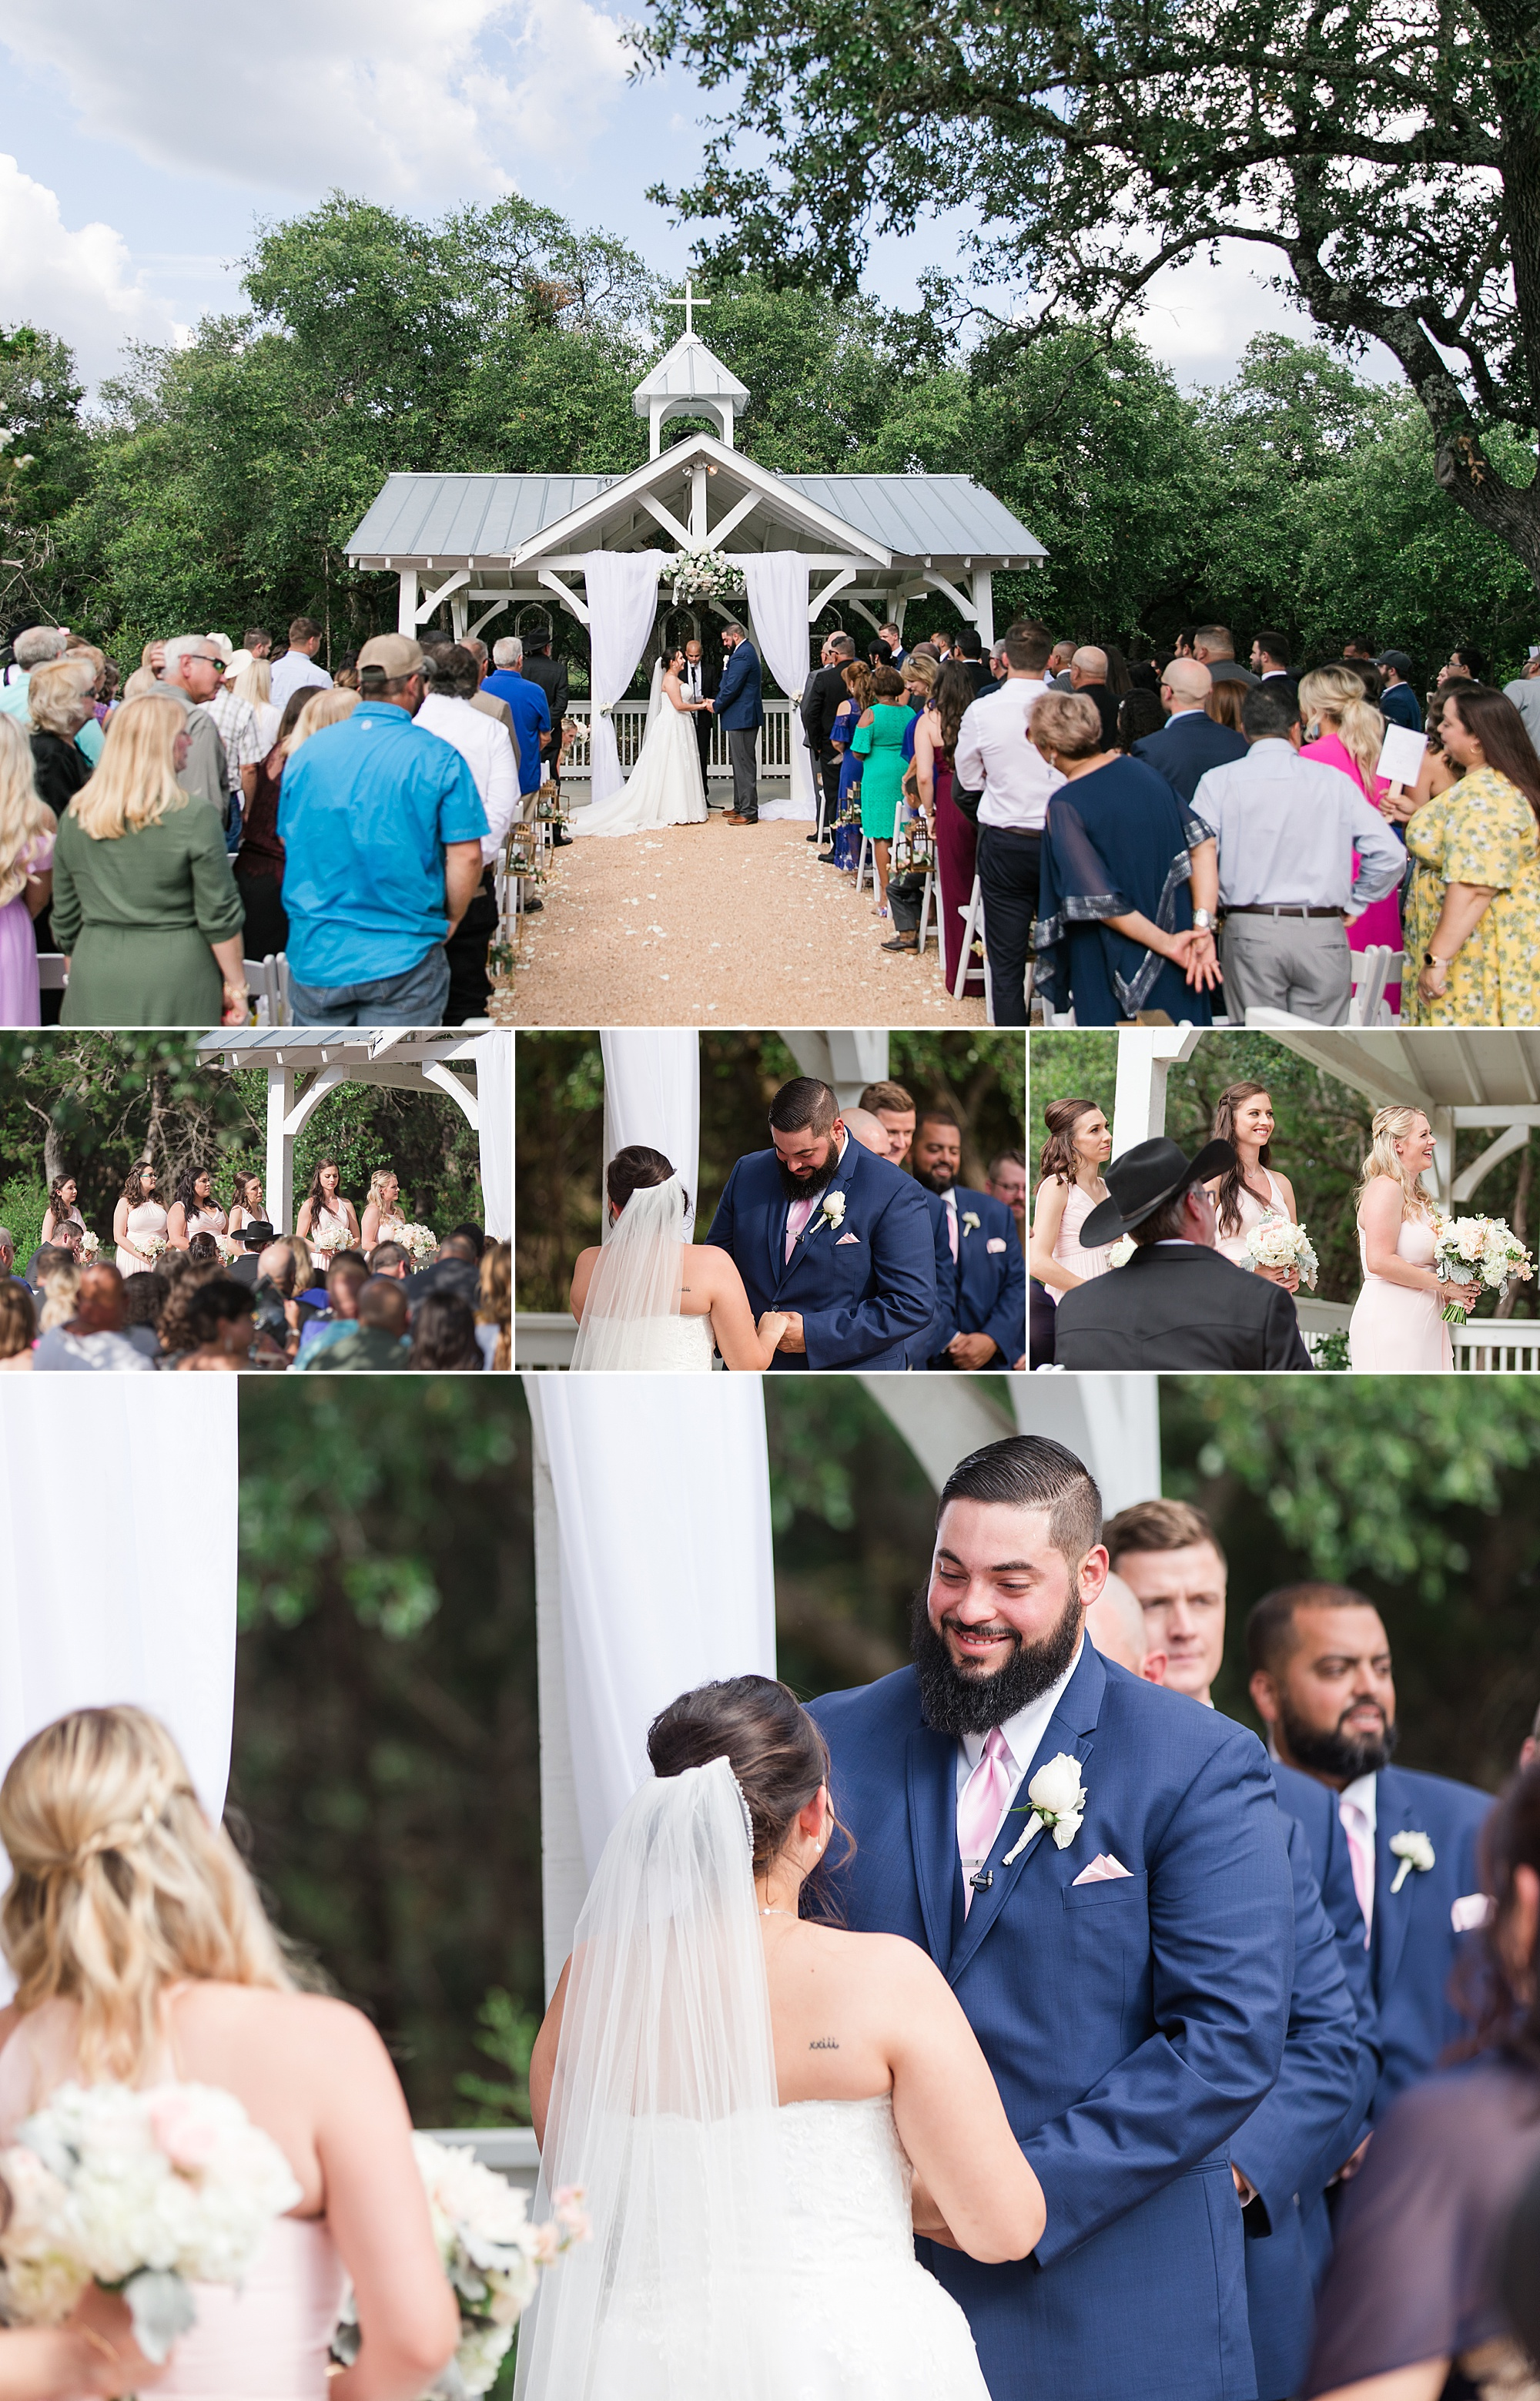 Wedding-Photographer-Bulverde-Texas-Western-Sky-Event-Venue-Carly-Barton-Photography_0043.jpg